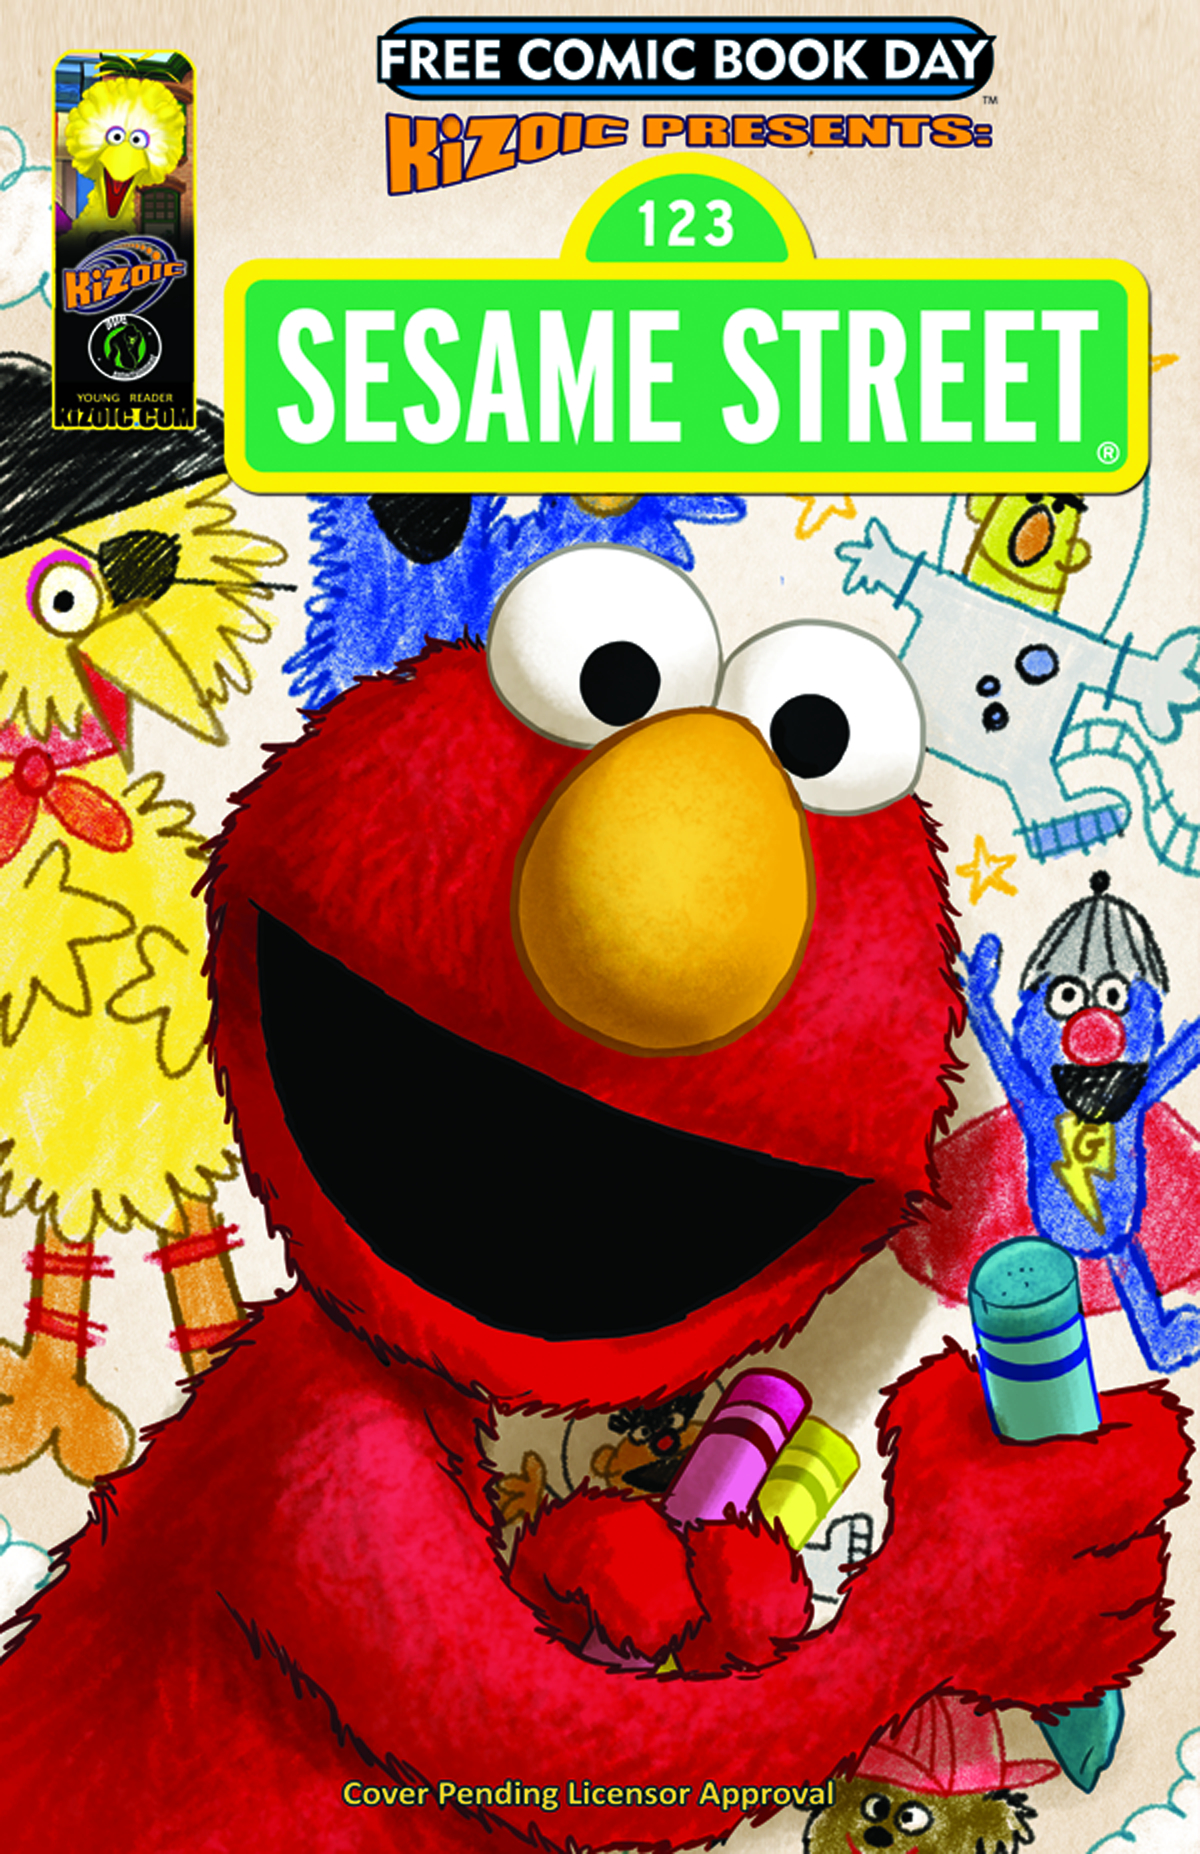 FCBD 2013 SESAME STREET & STRAWBERRY SHORTCAKE